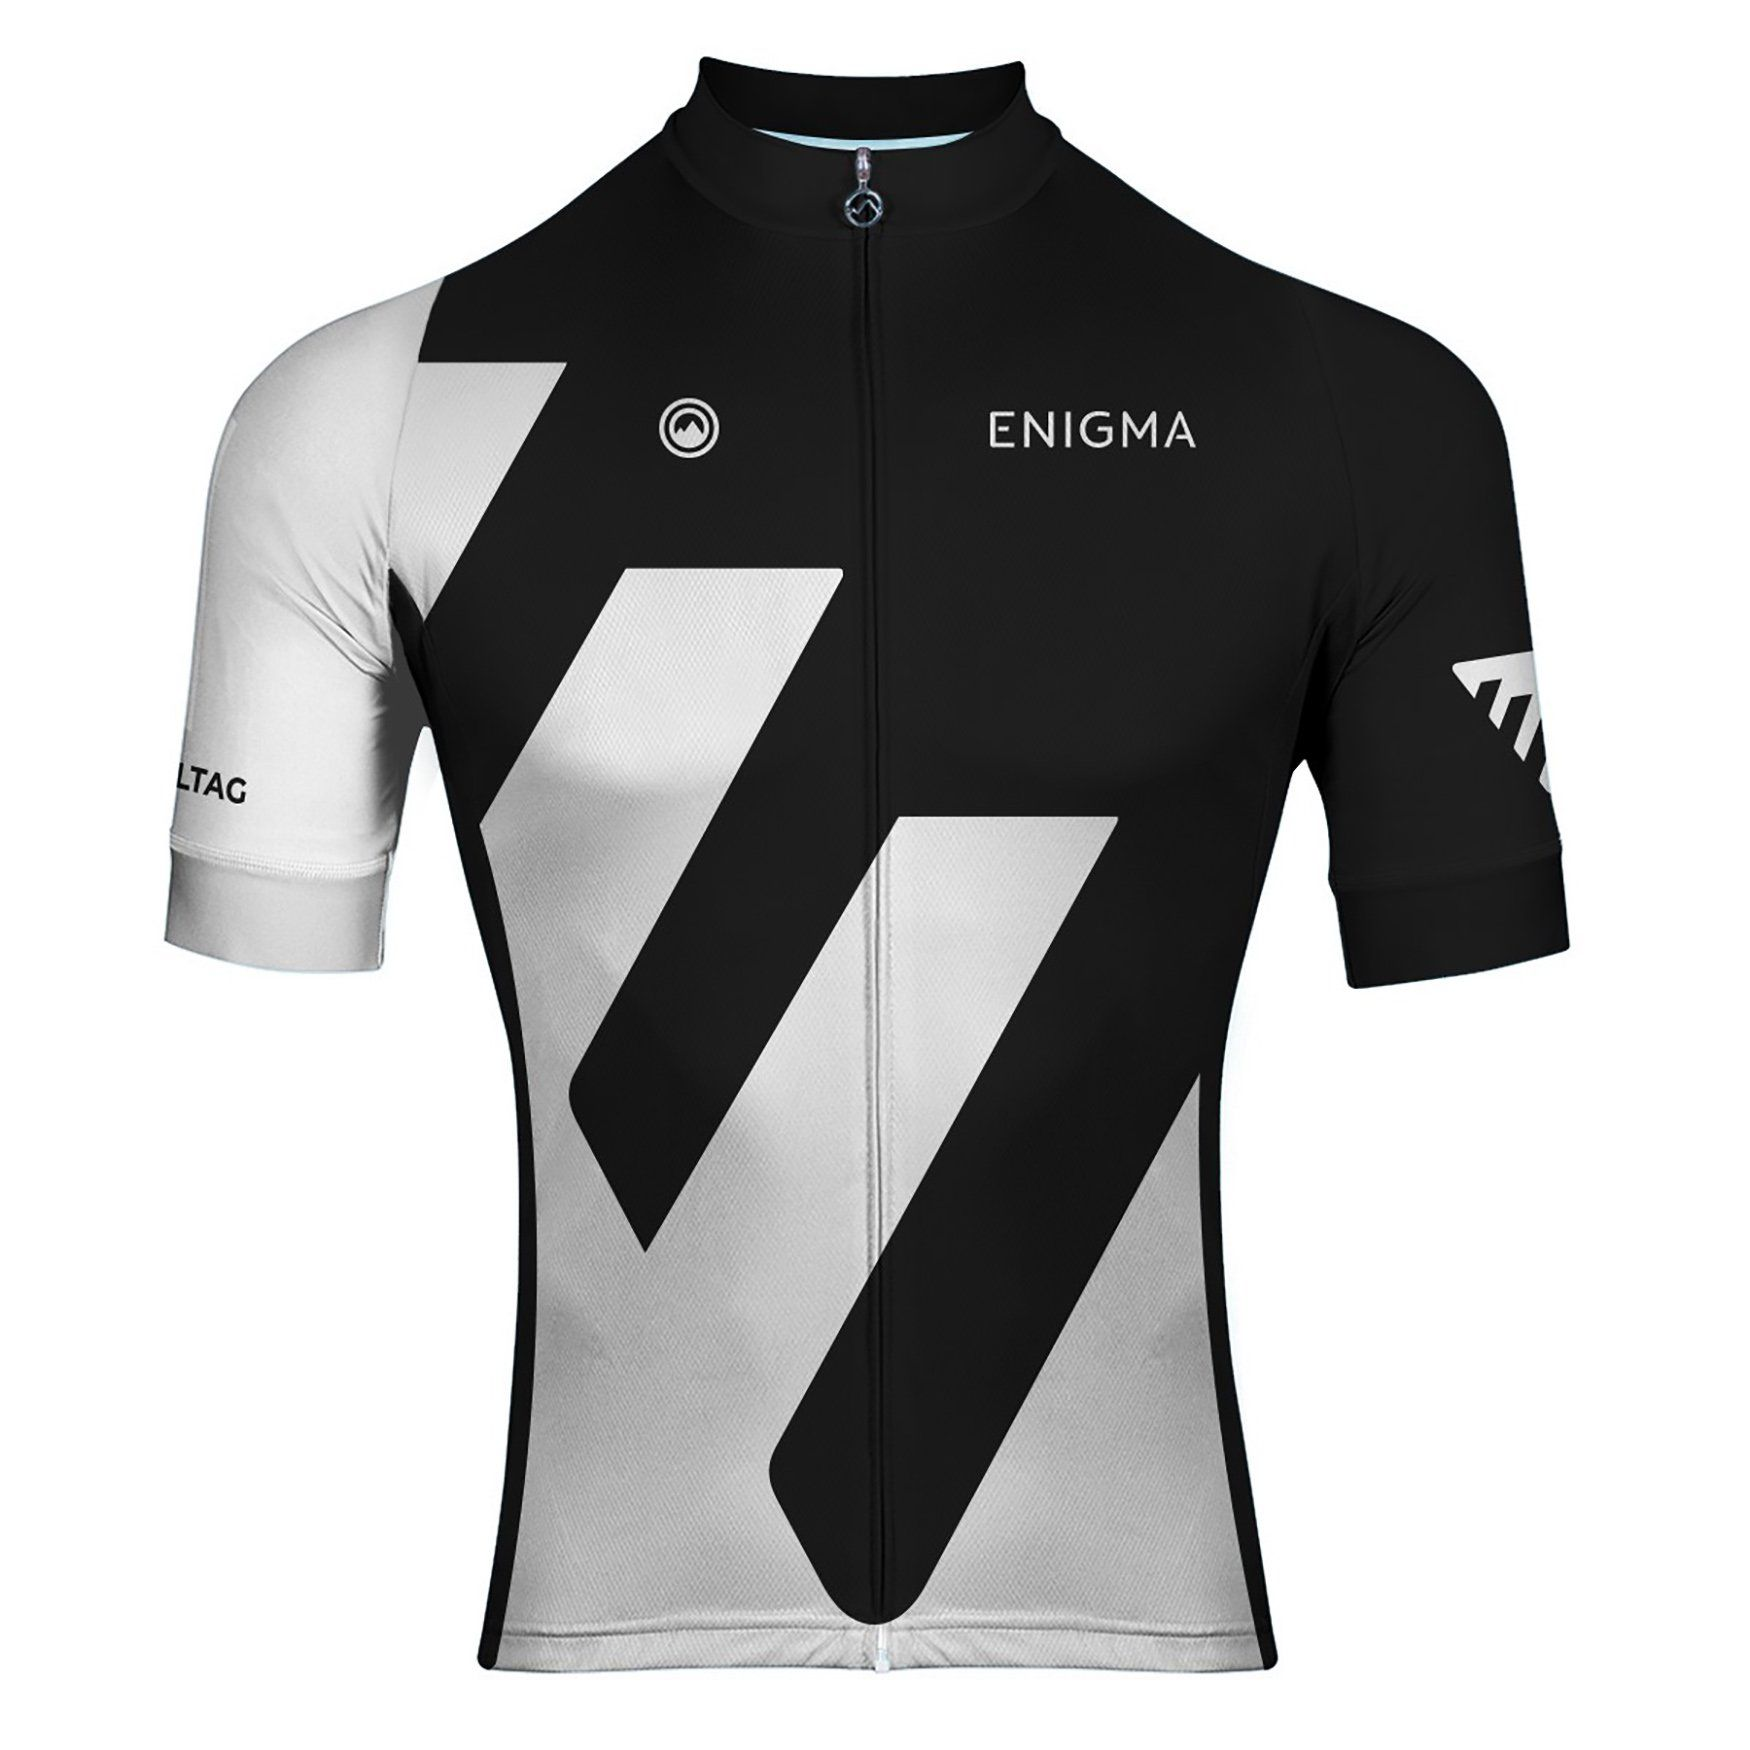 Enigma S S Jersey Design 1 Bike Jersey Design Cycling Jersey